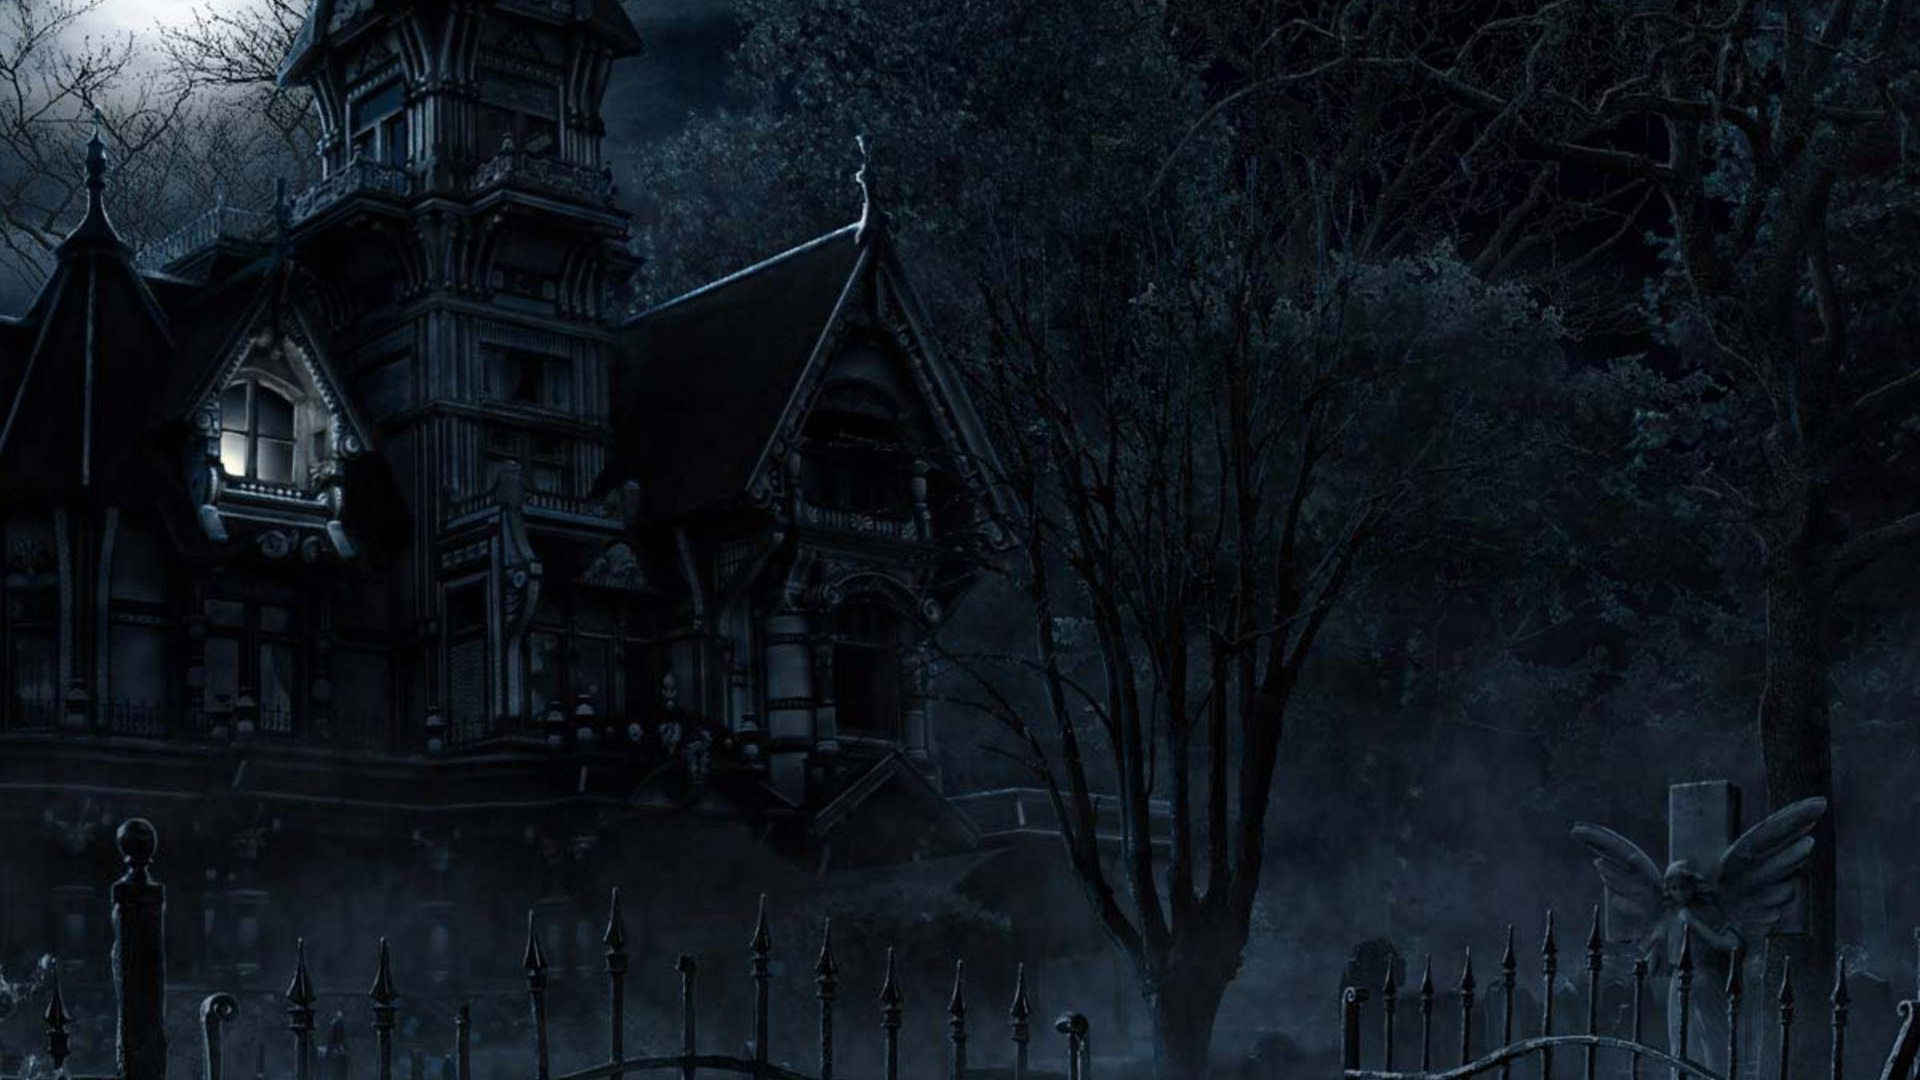 Free Download Halloween Wallpaper Hd